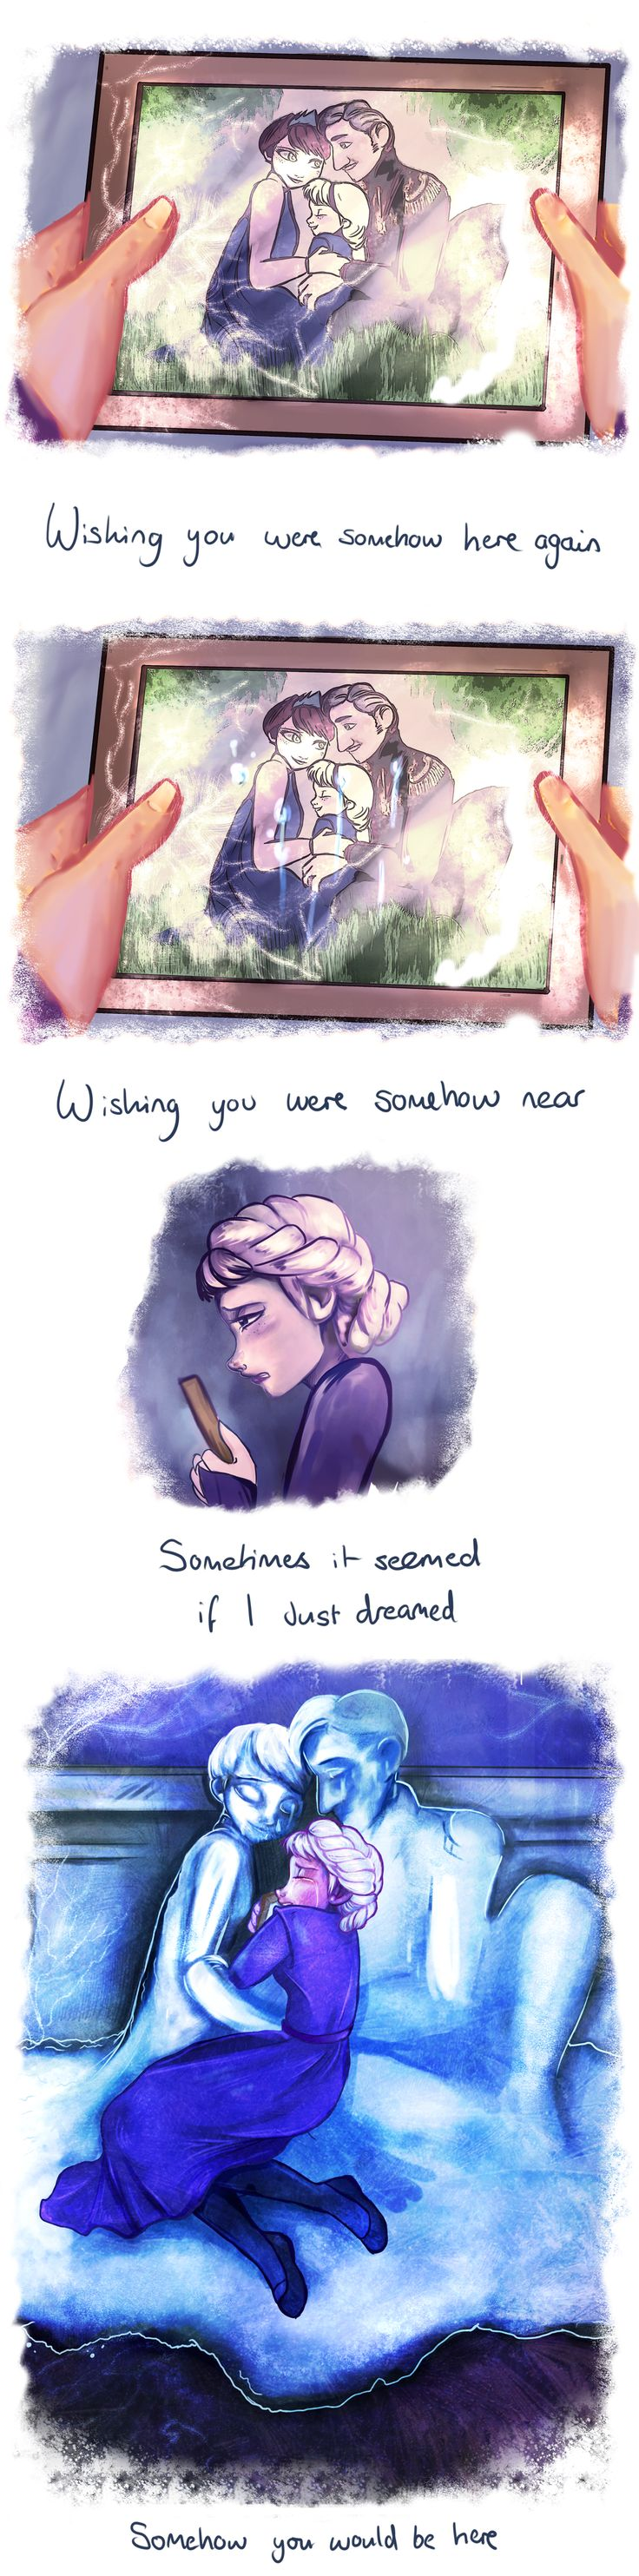 """Help me say goodbye by Kittykatpaws.deviantart.com on @deviantART - Elsa from """"Frozen"""" grieving for her parents. The text comes from the song """"Wishing You Were Somehow Here Again"""" from """"Phantom of the Opera""""."""